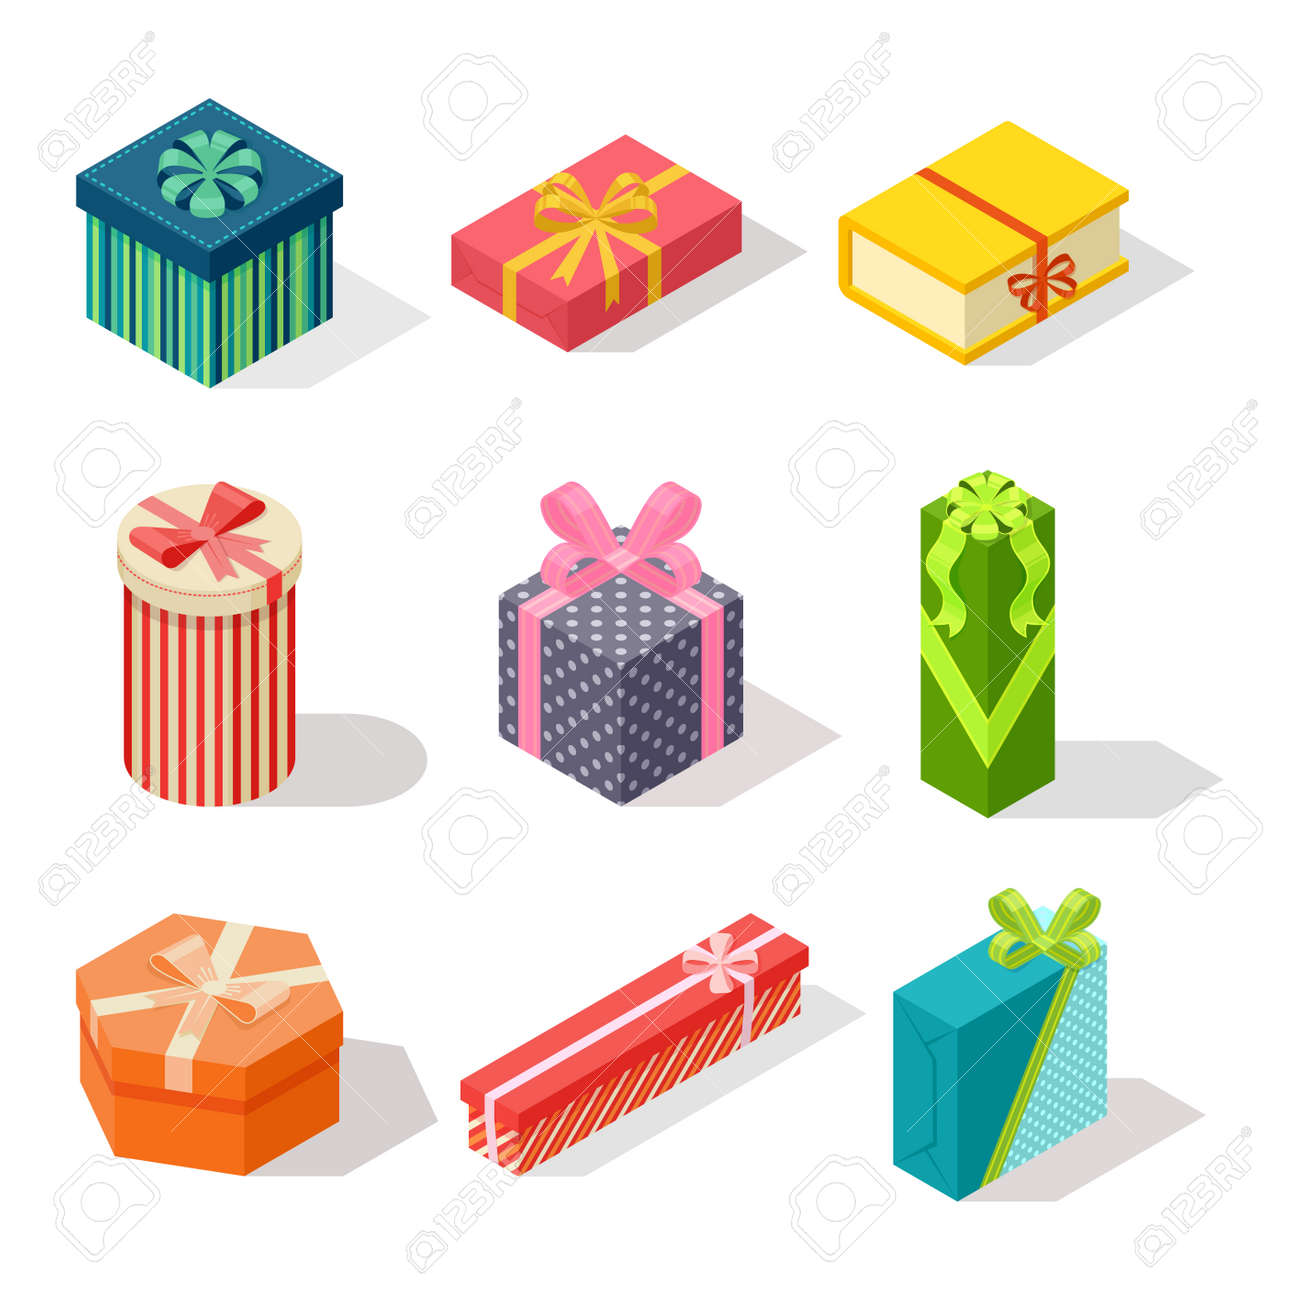 vector gift box isometric view cardboard container pack gift rh 123rf com gift vector ai gift vector ruban